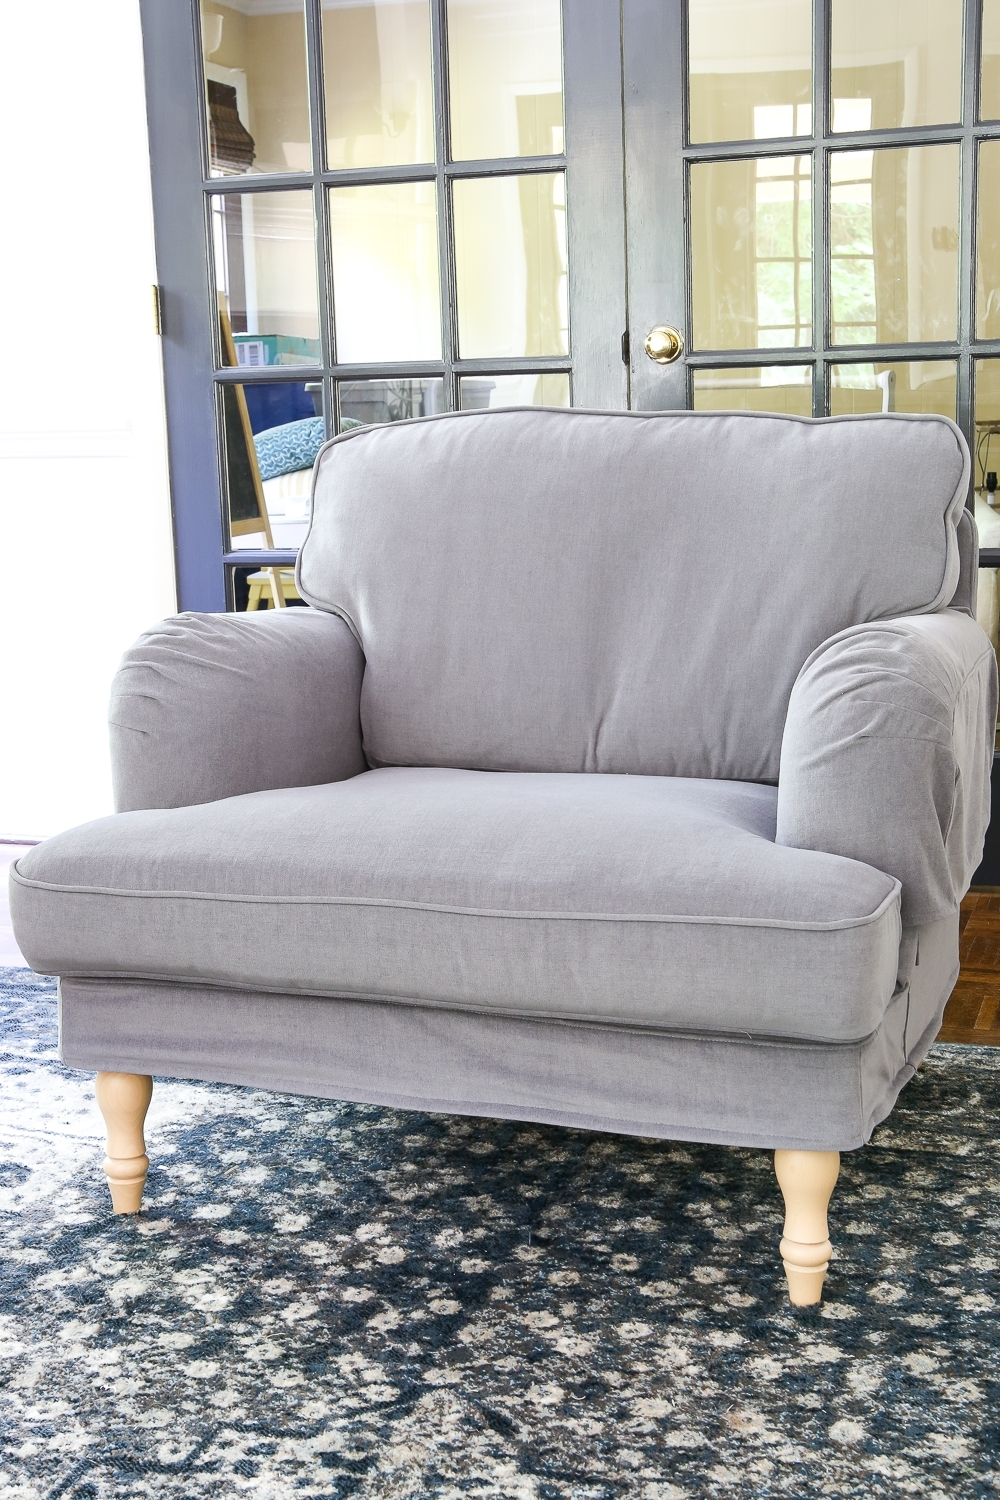 Most Recent Comfortable Sofas And Chairs Throughout Ikea's New Sofa And Chairs And How To Keep Them Clean – Bless'er House (View 10 of 15)